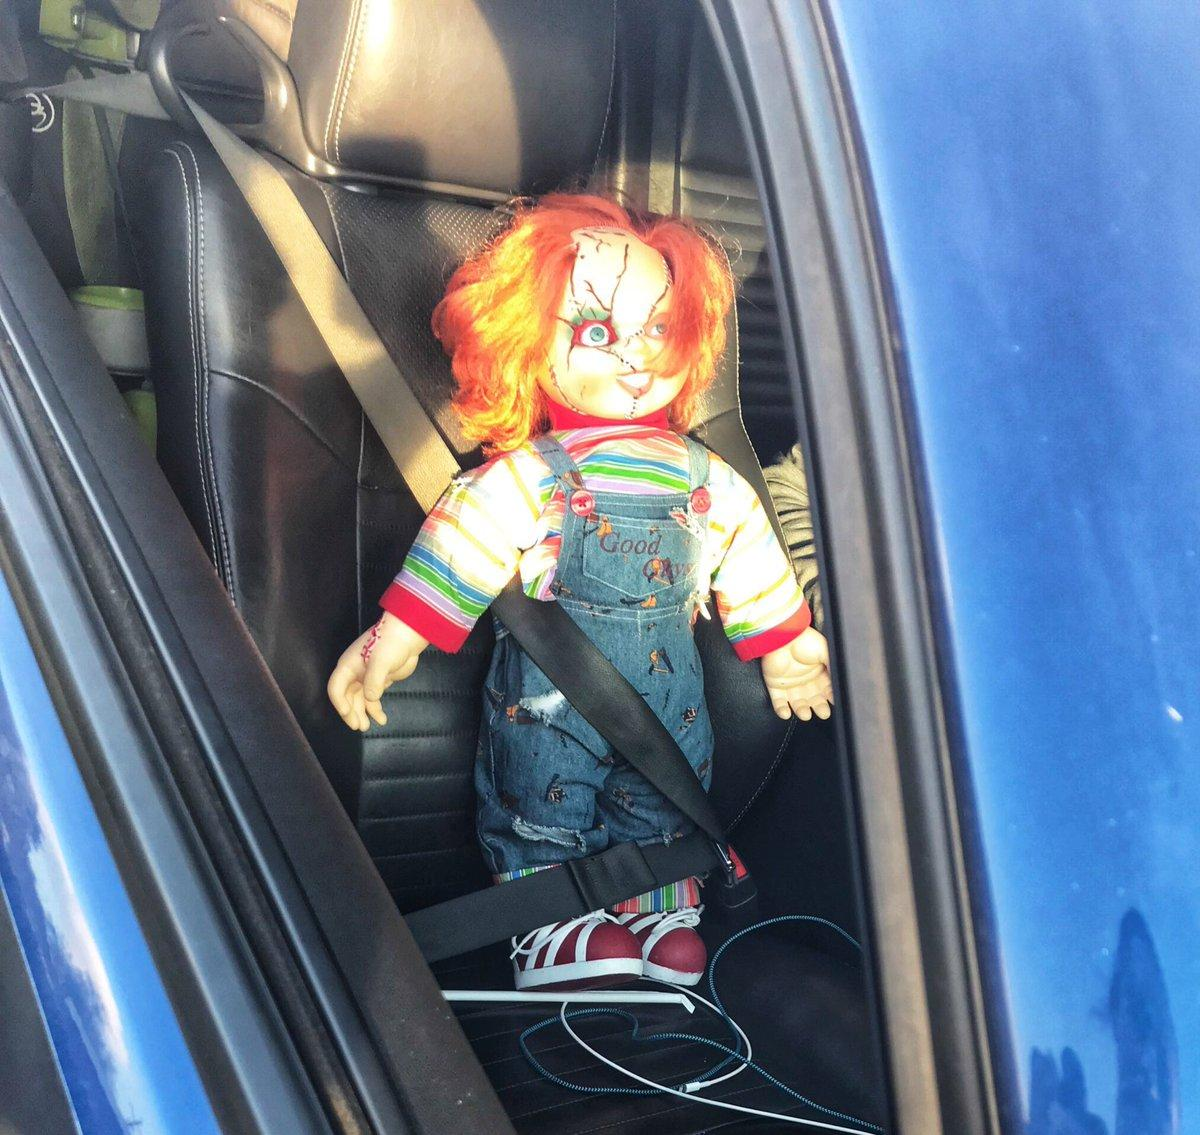 Traffic horror story: Man cited after using Chucky Doll for carpool lane